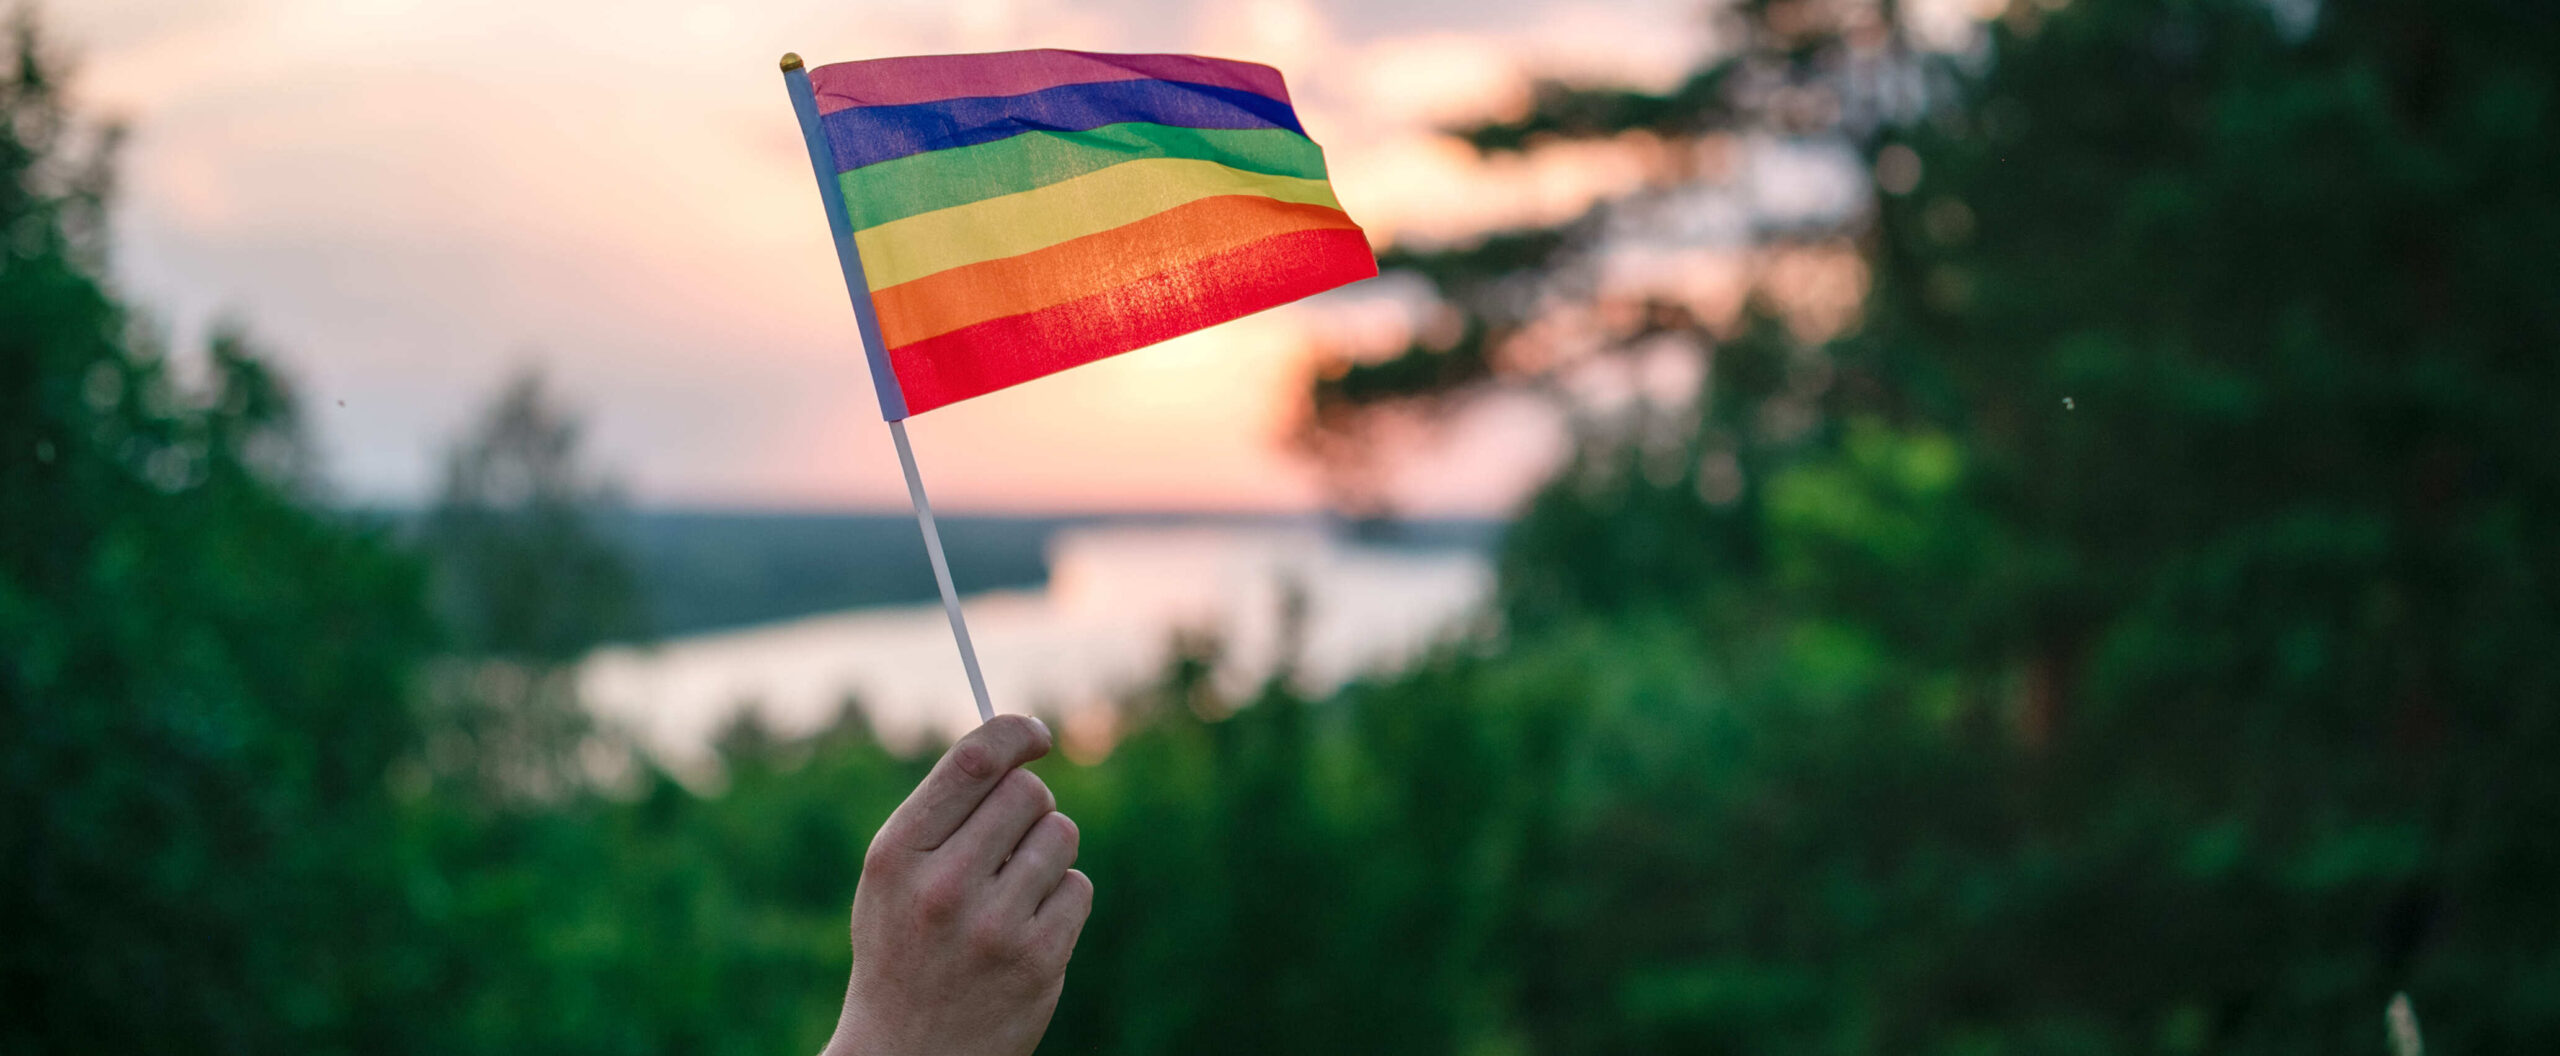 pride flag in hand